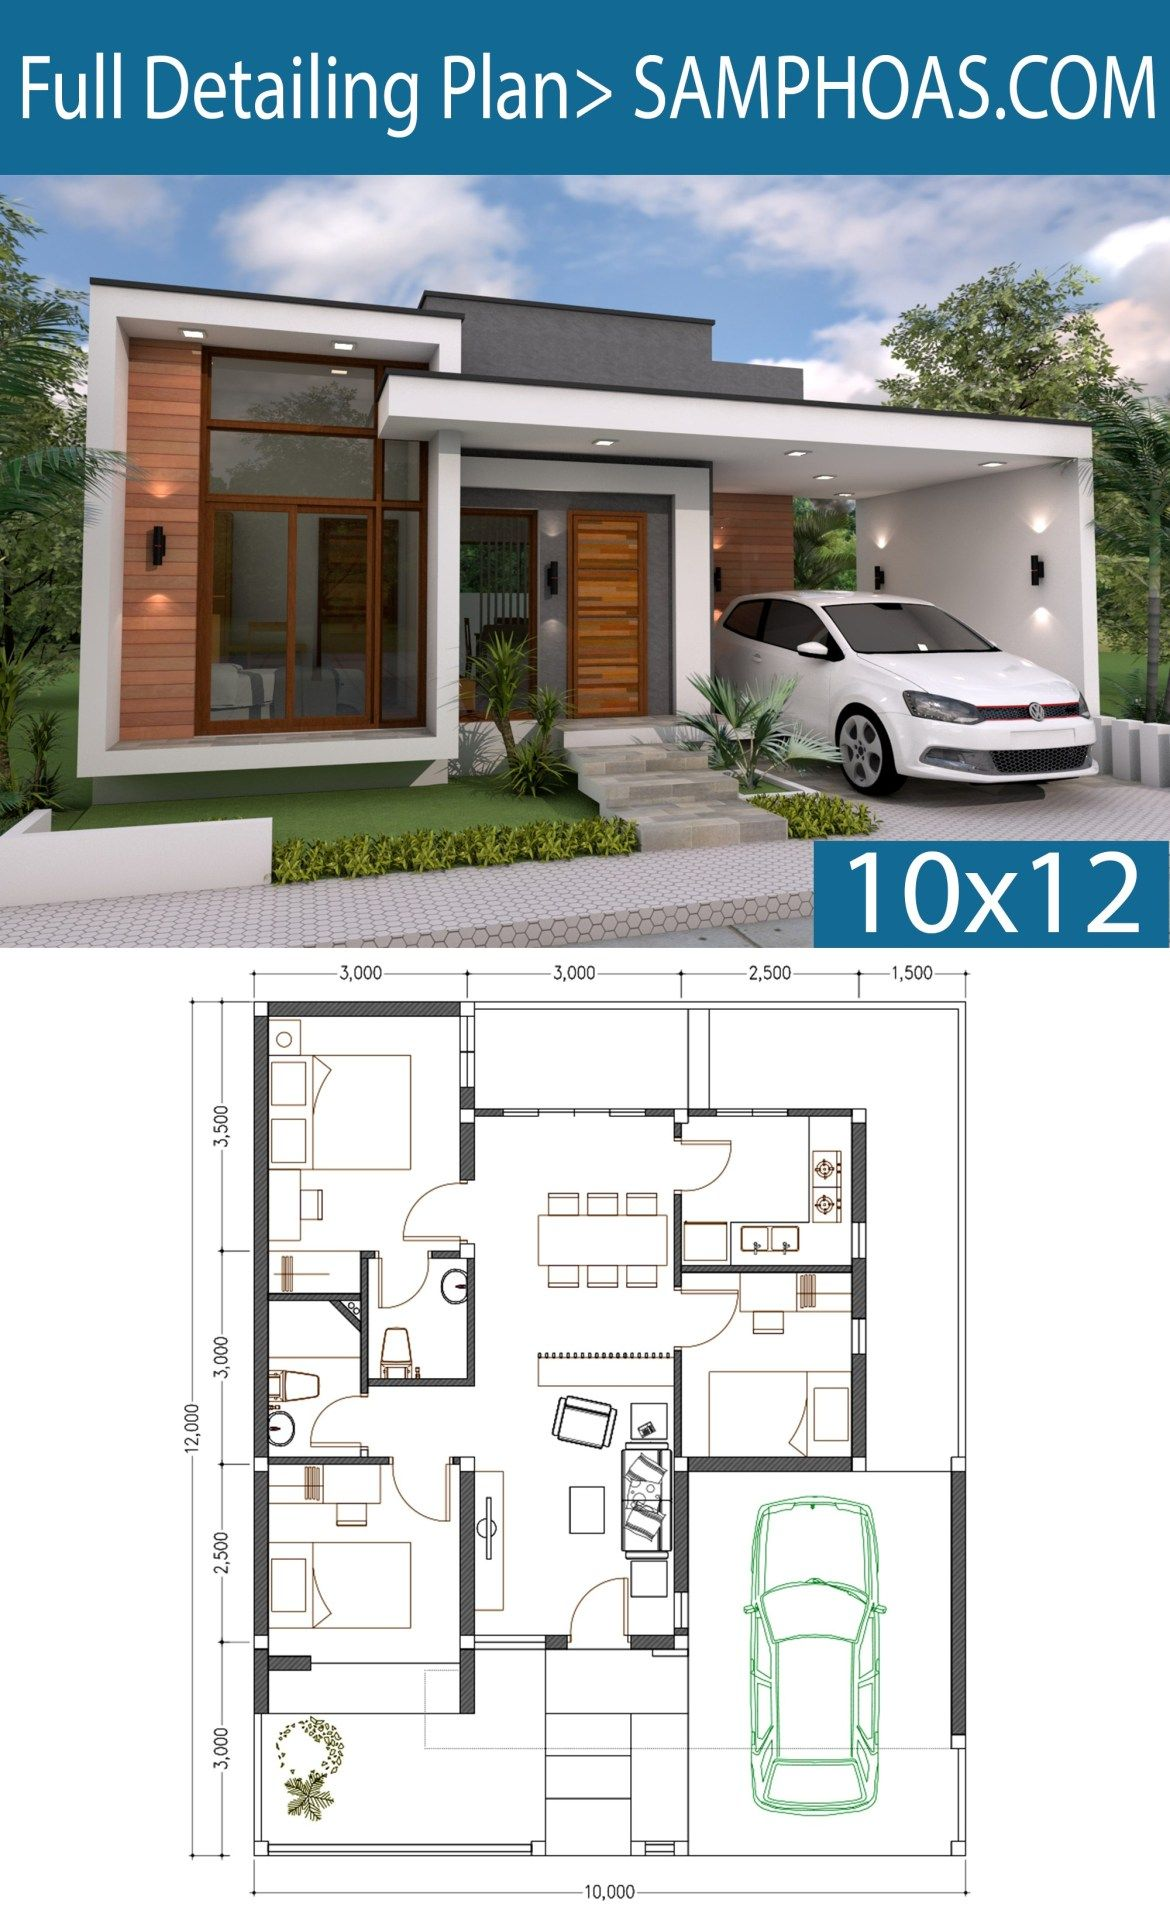 3 Bedrooms Home Design Plan 10x12m Simple House Design